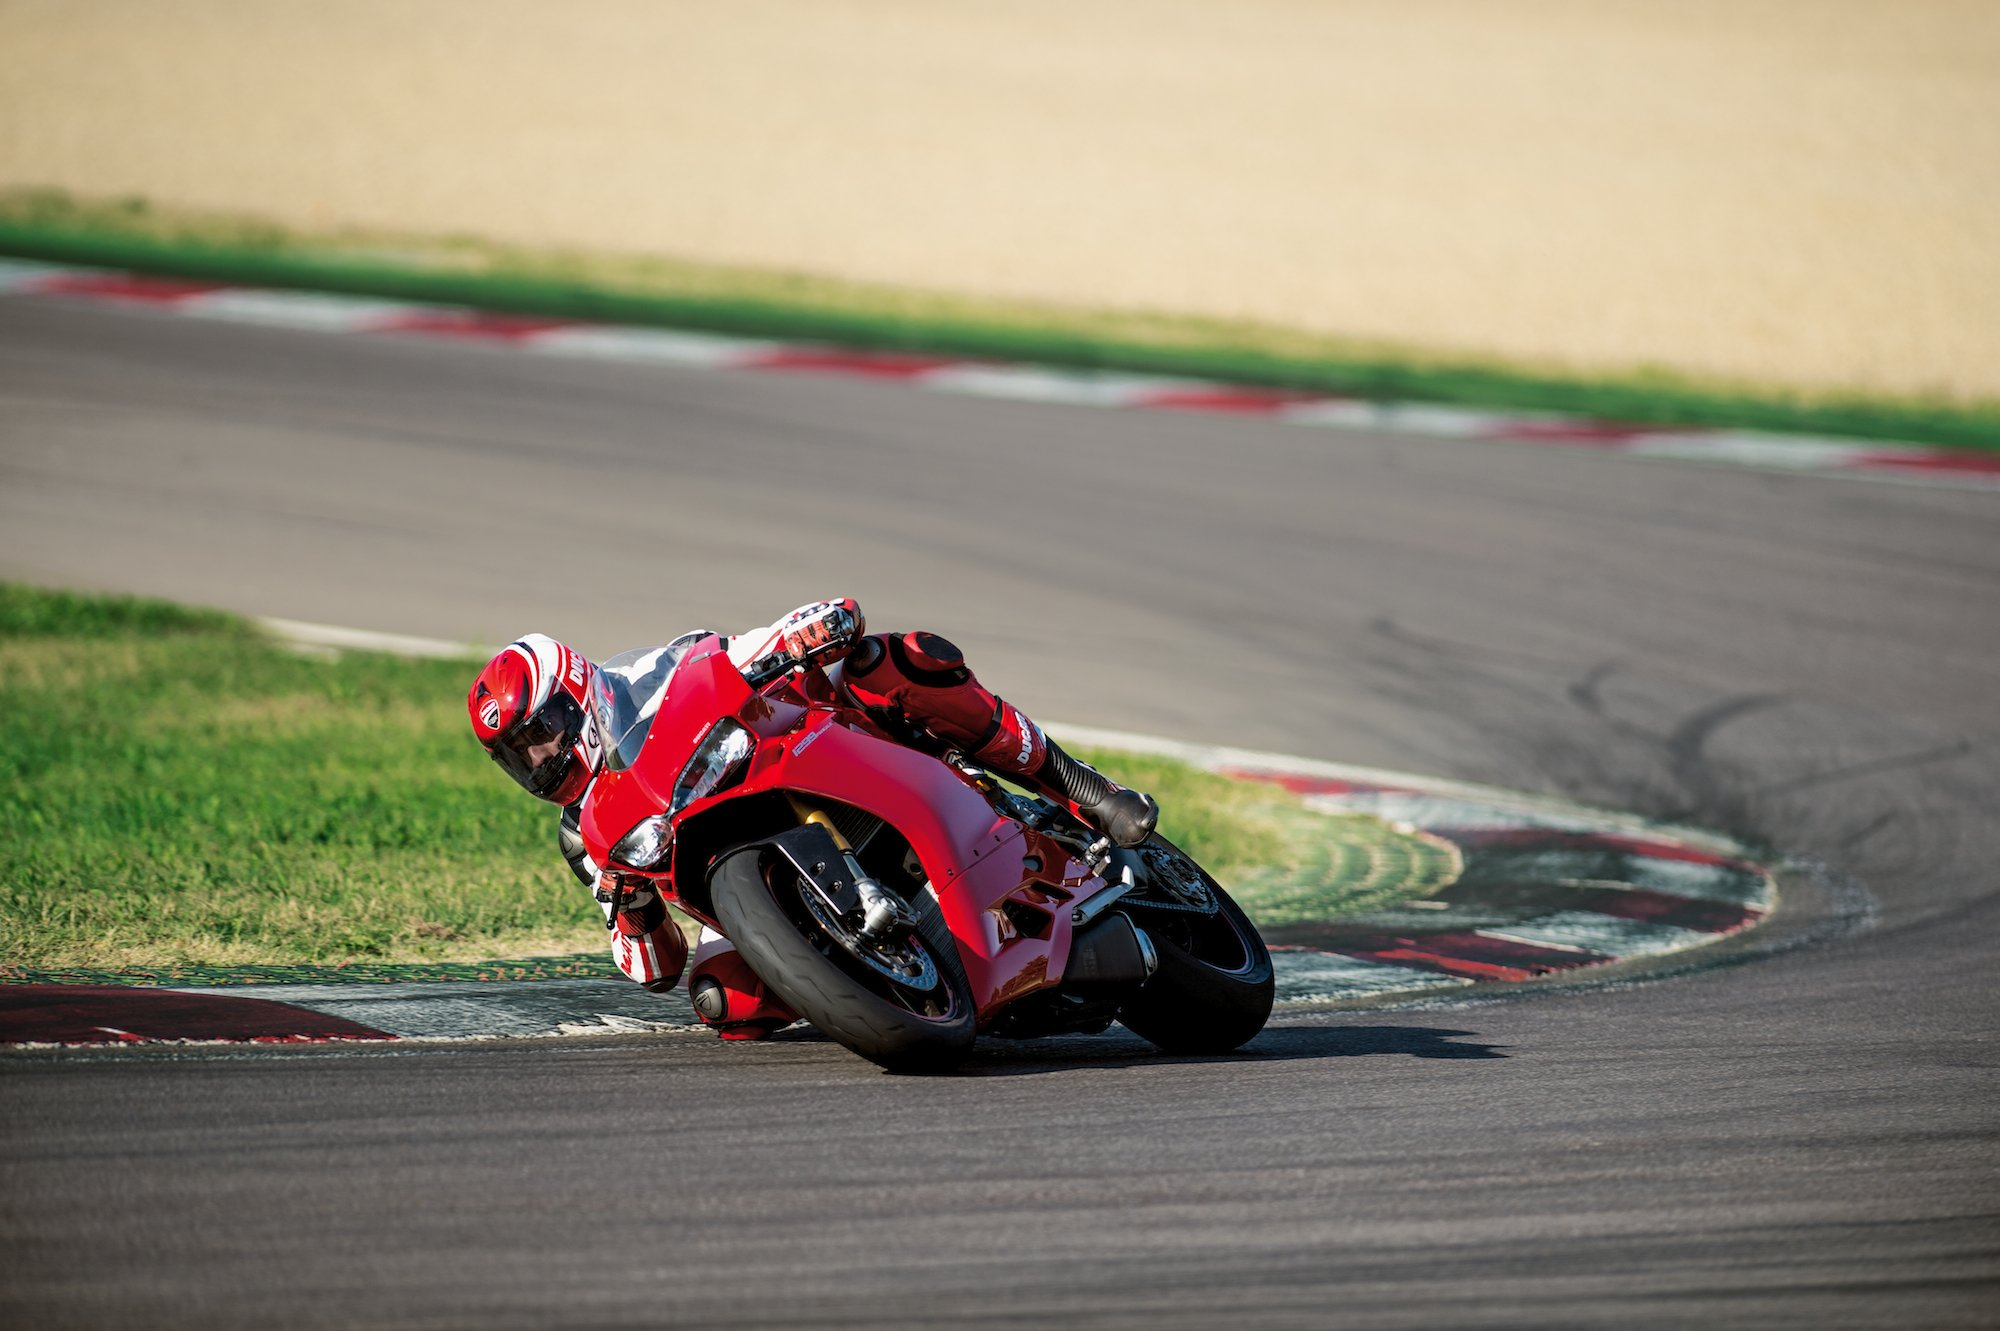 Want to know more about the Ducati 1299 Panigale?